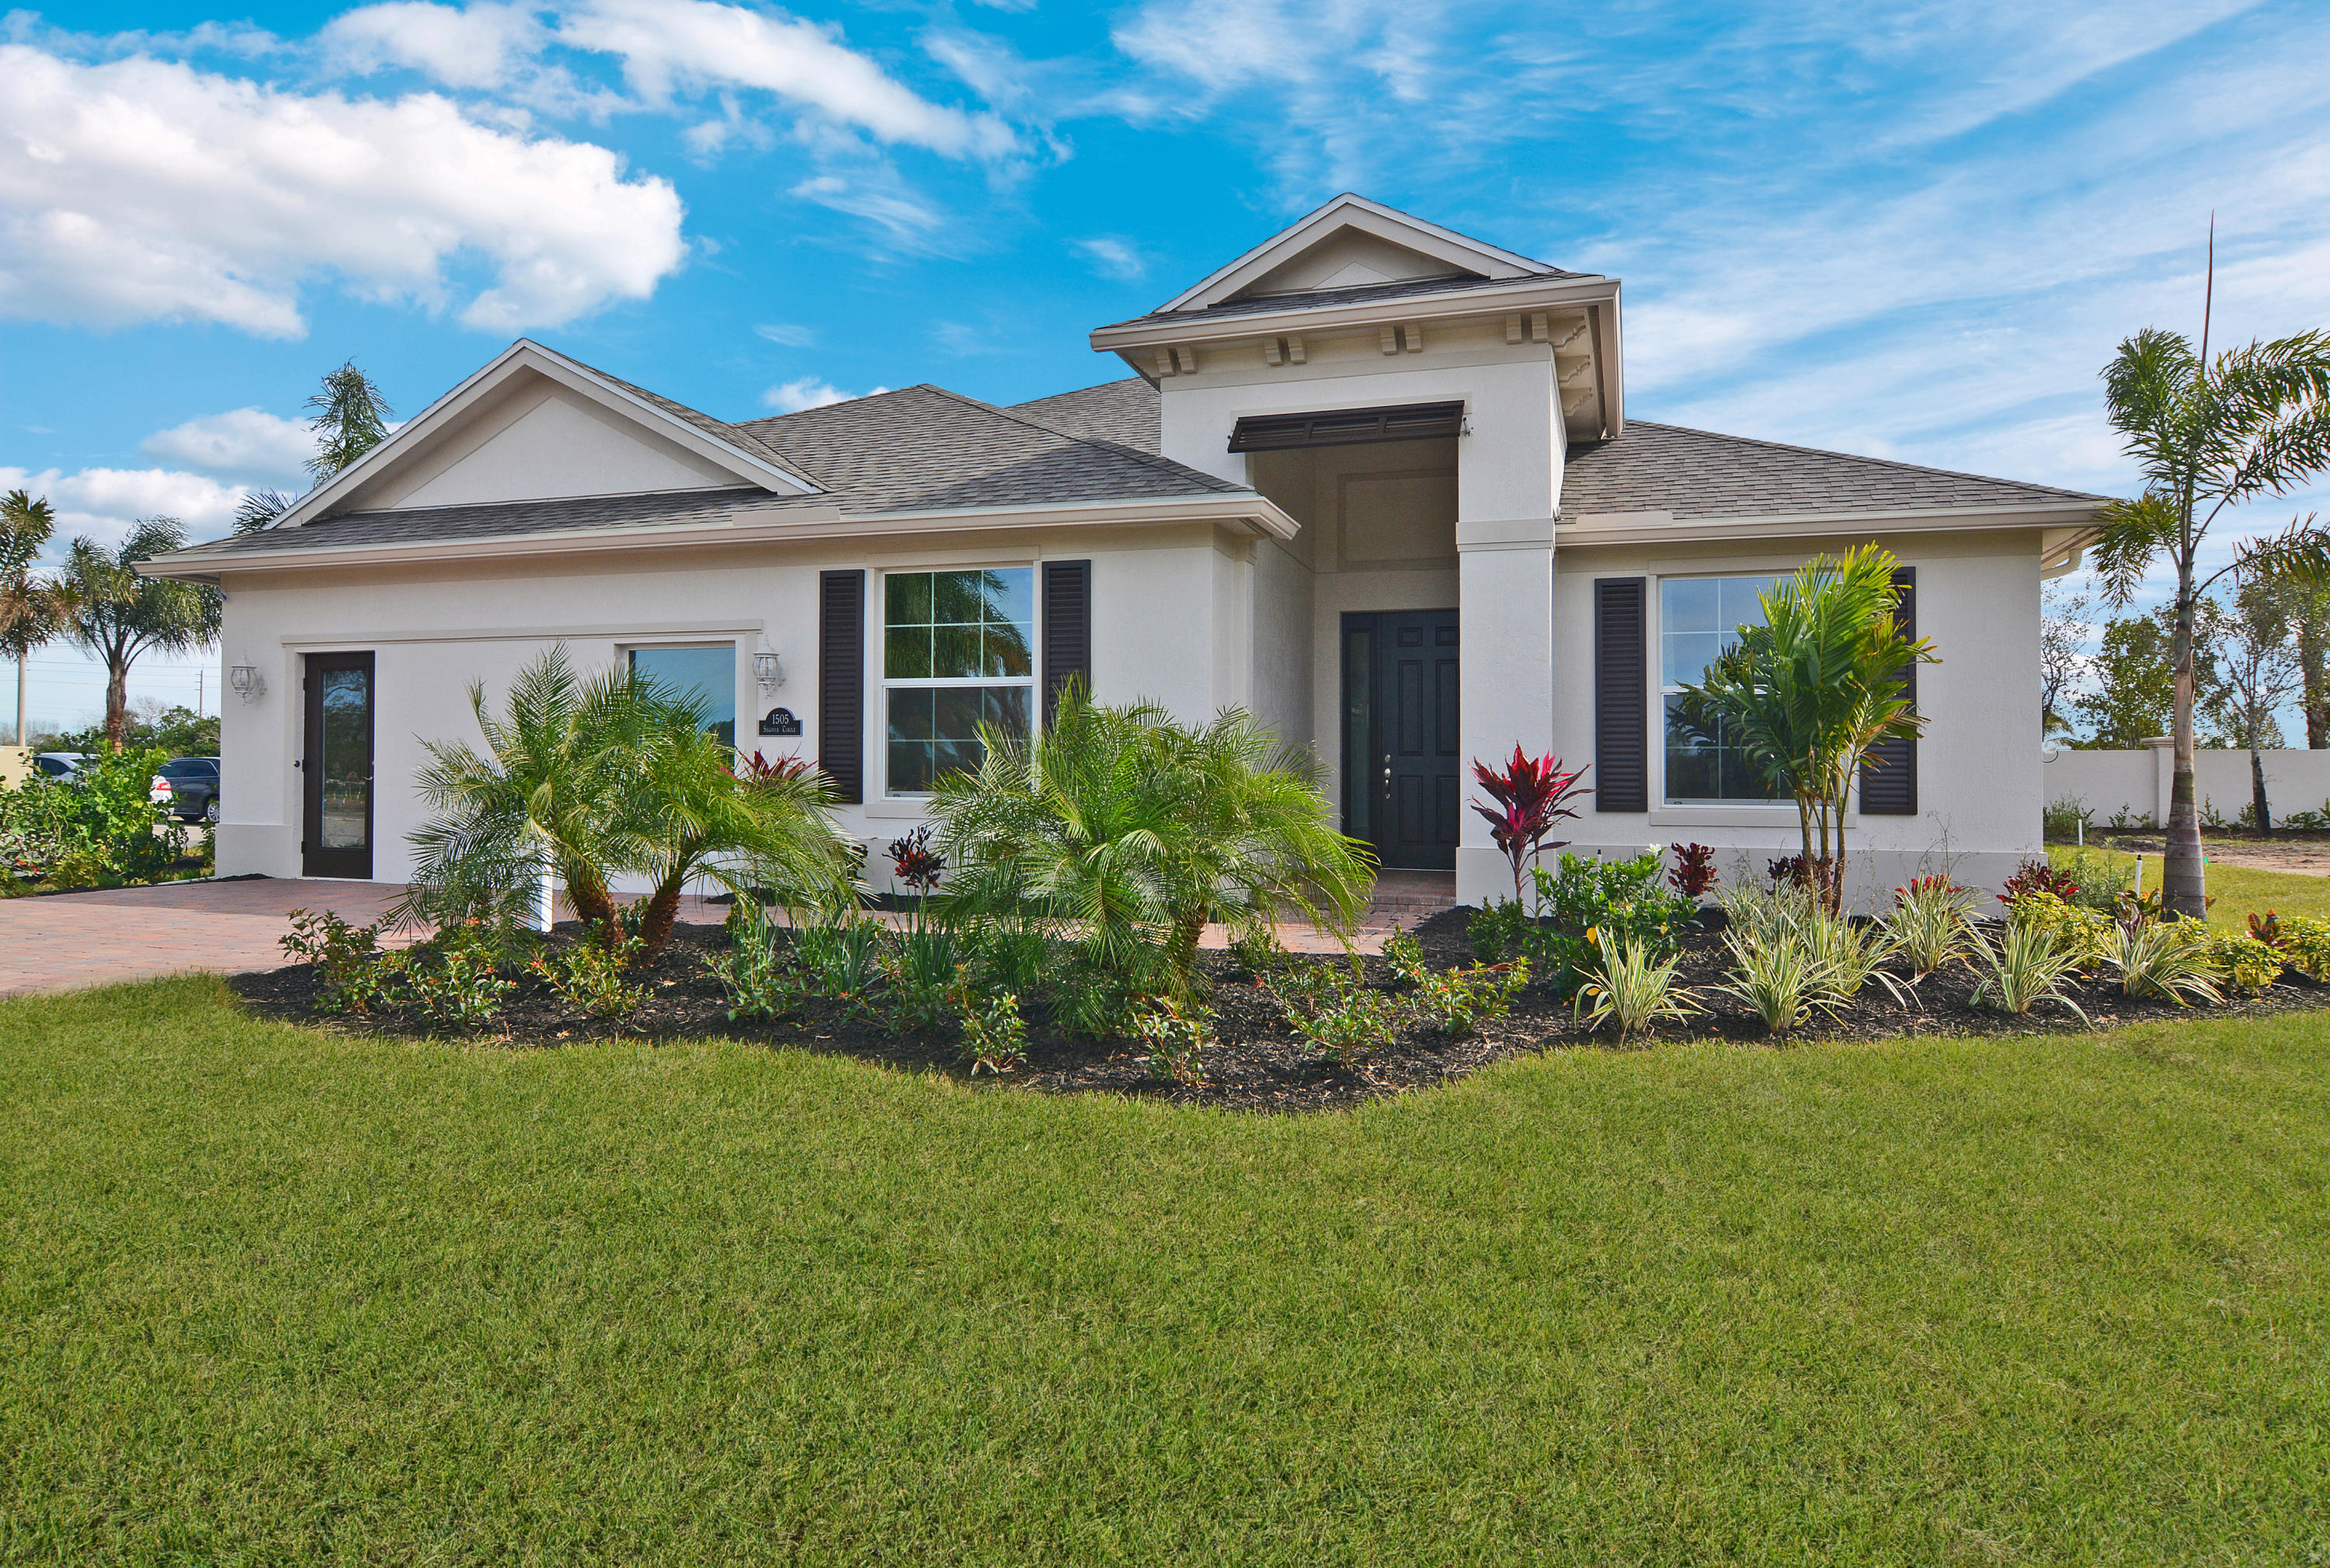 Photo of 1646 Segovia Circle, Vero Beach, FL 32966